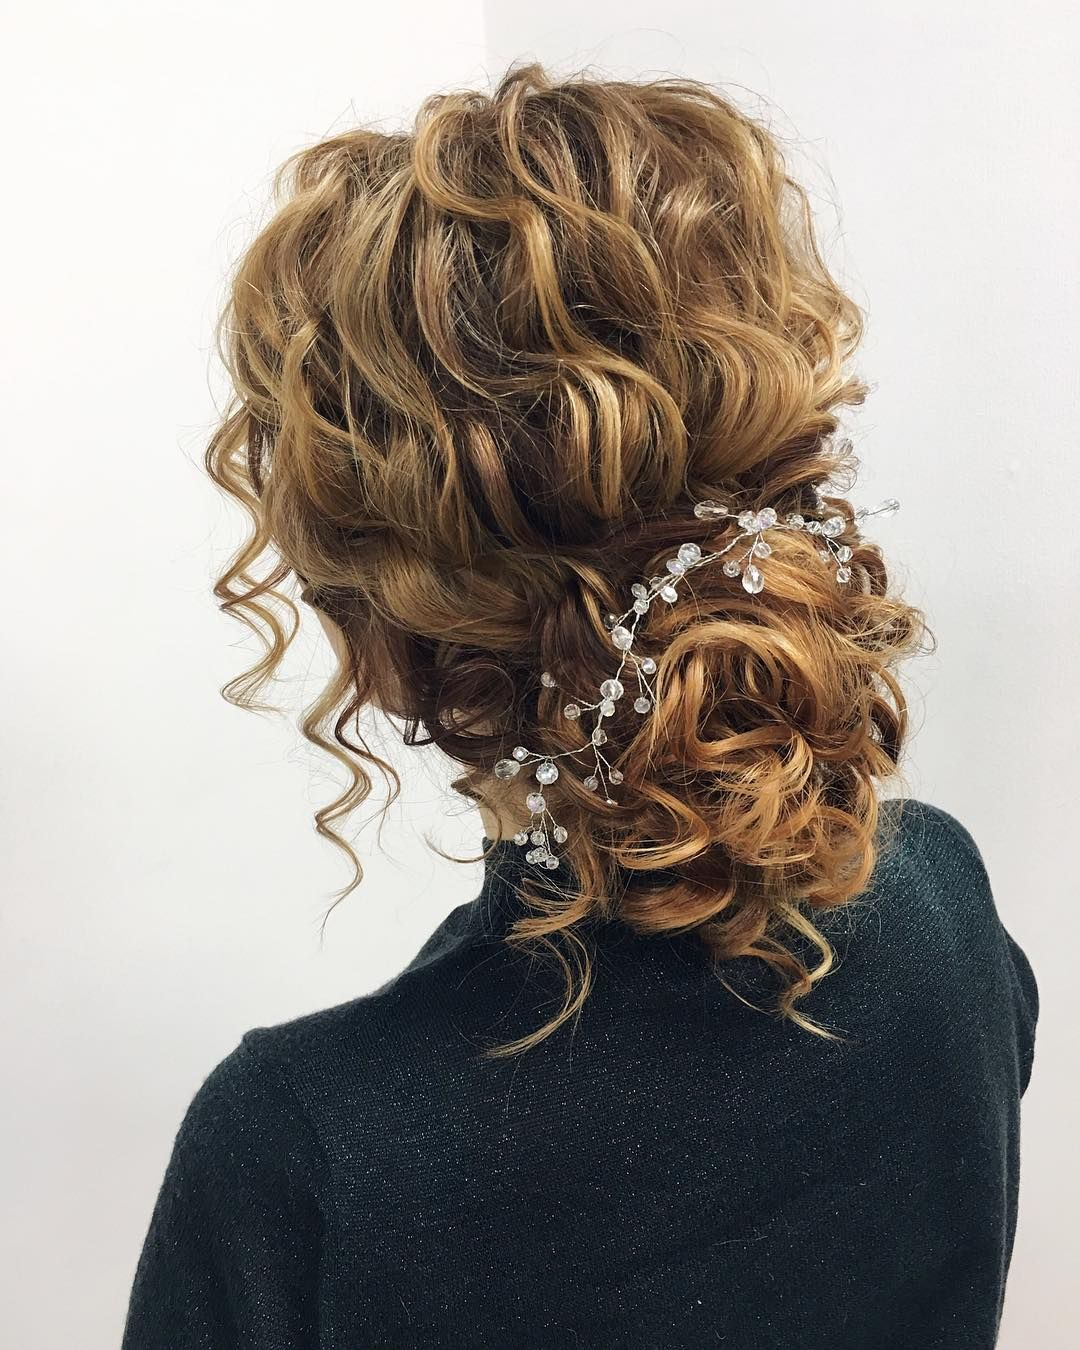 87 fabulous wedding hairstyles for every wedding dress